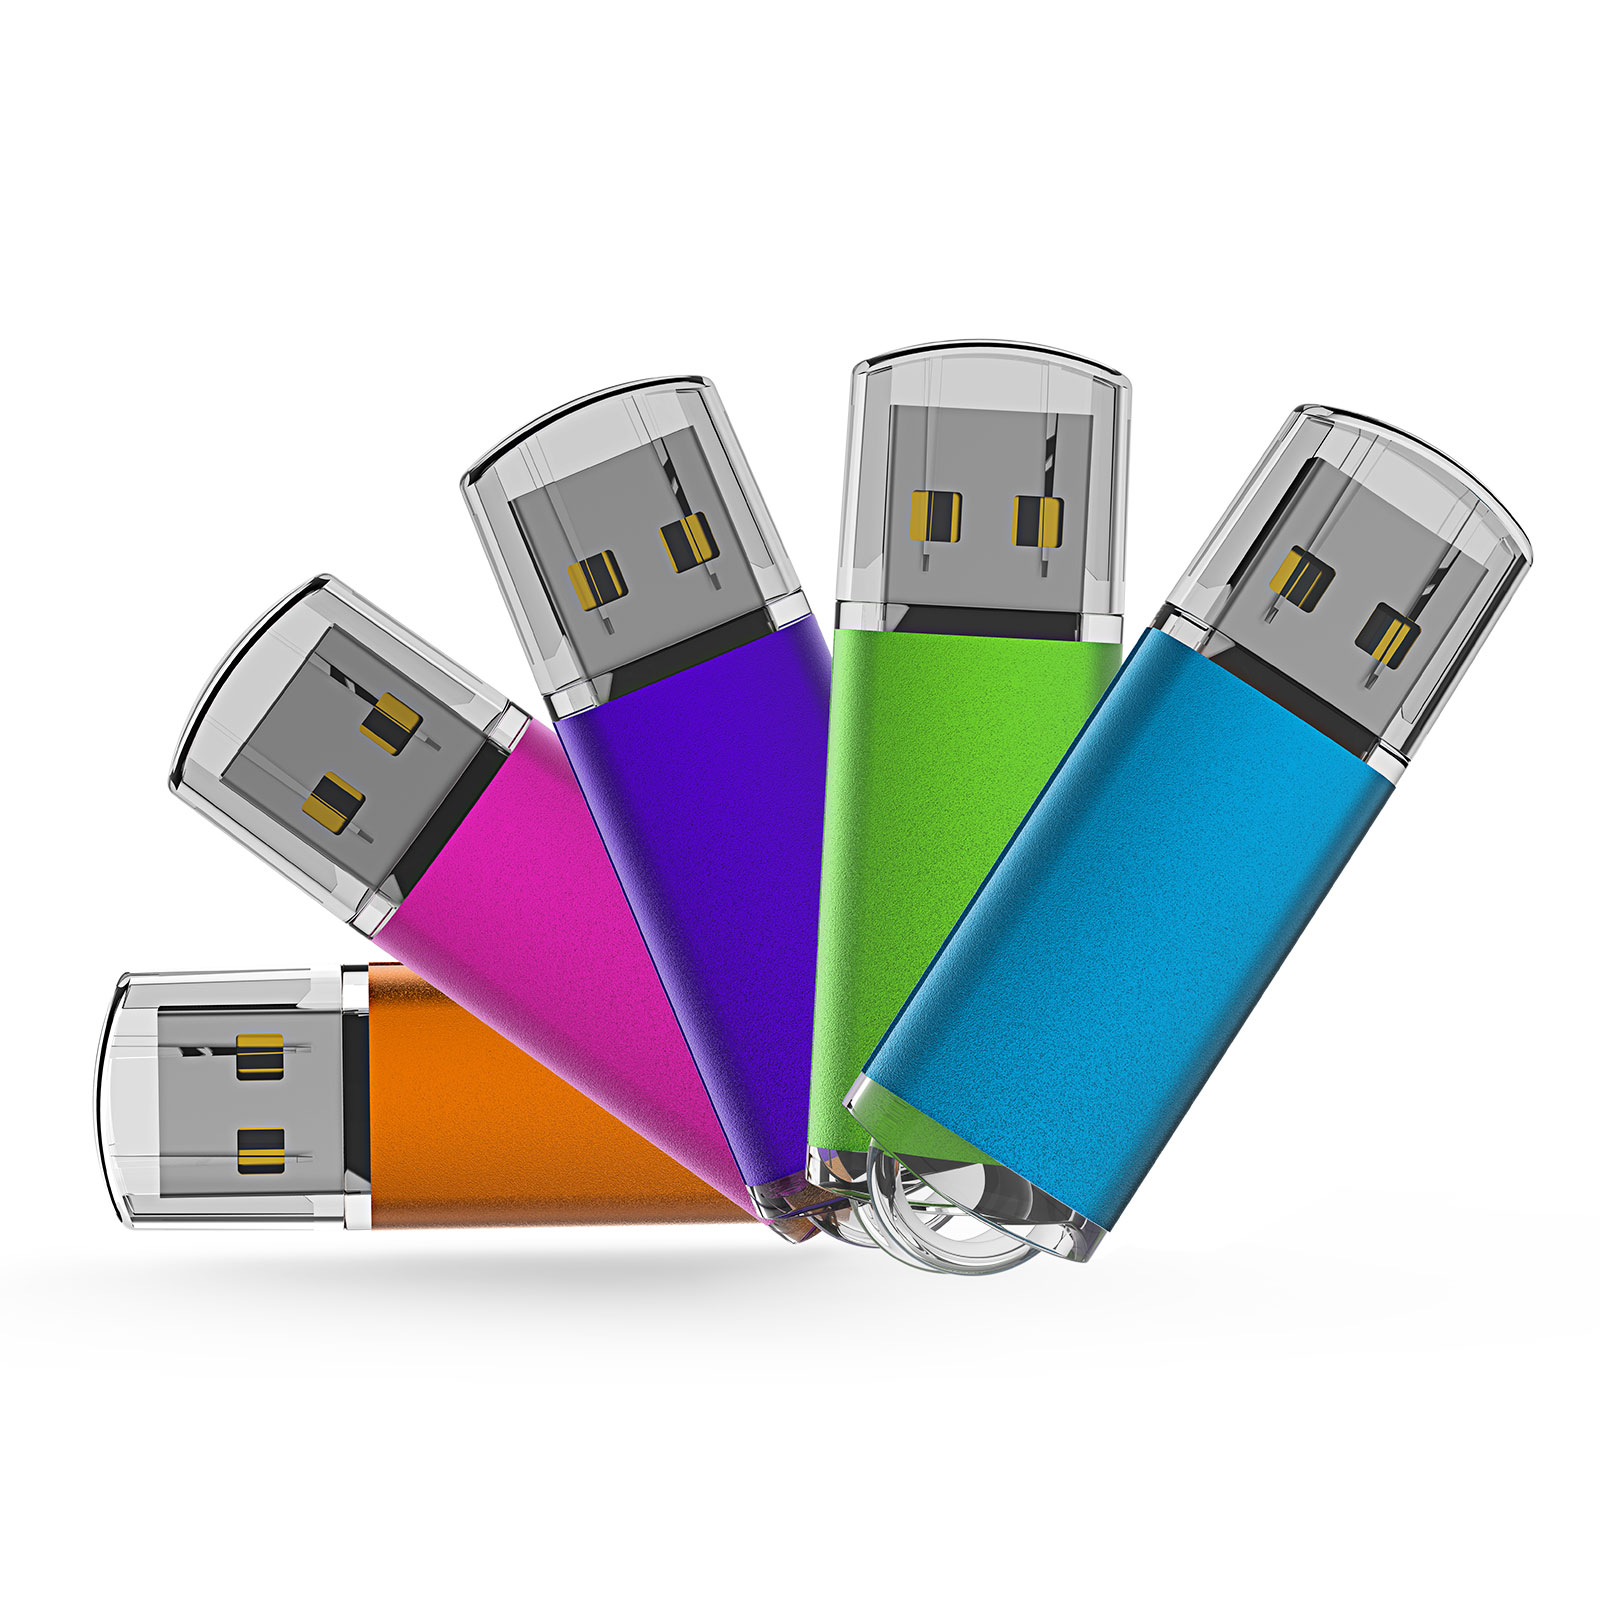 KOOTION 5 Pack 1GB USB 2.0 Flash Drive Thumb Drives Memory Stick, 5 Mixed Colors: Blue, Purple, Pink, Green, Orange